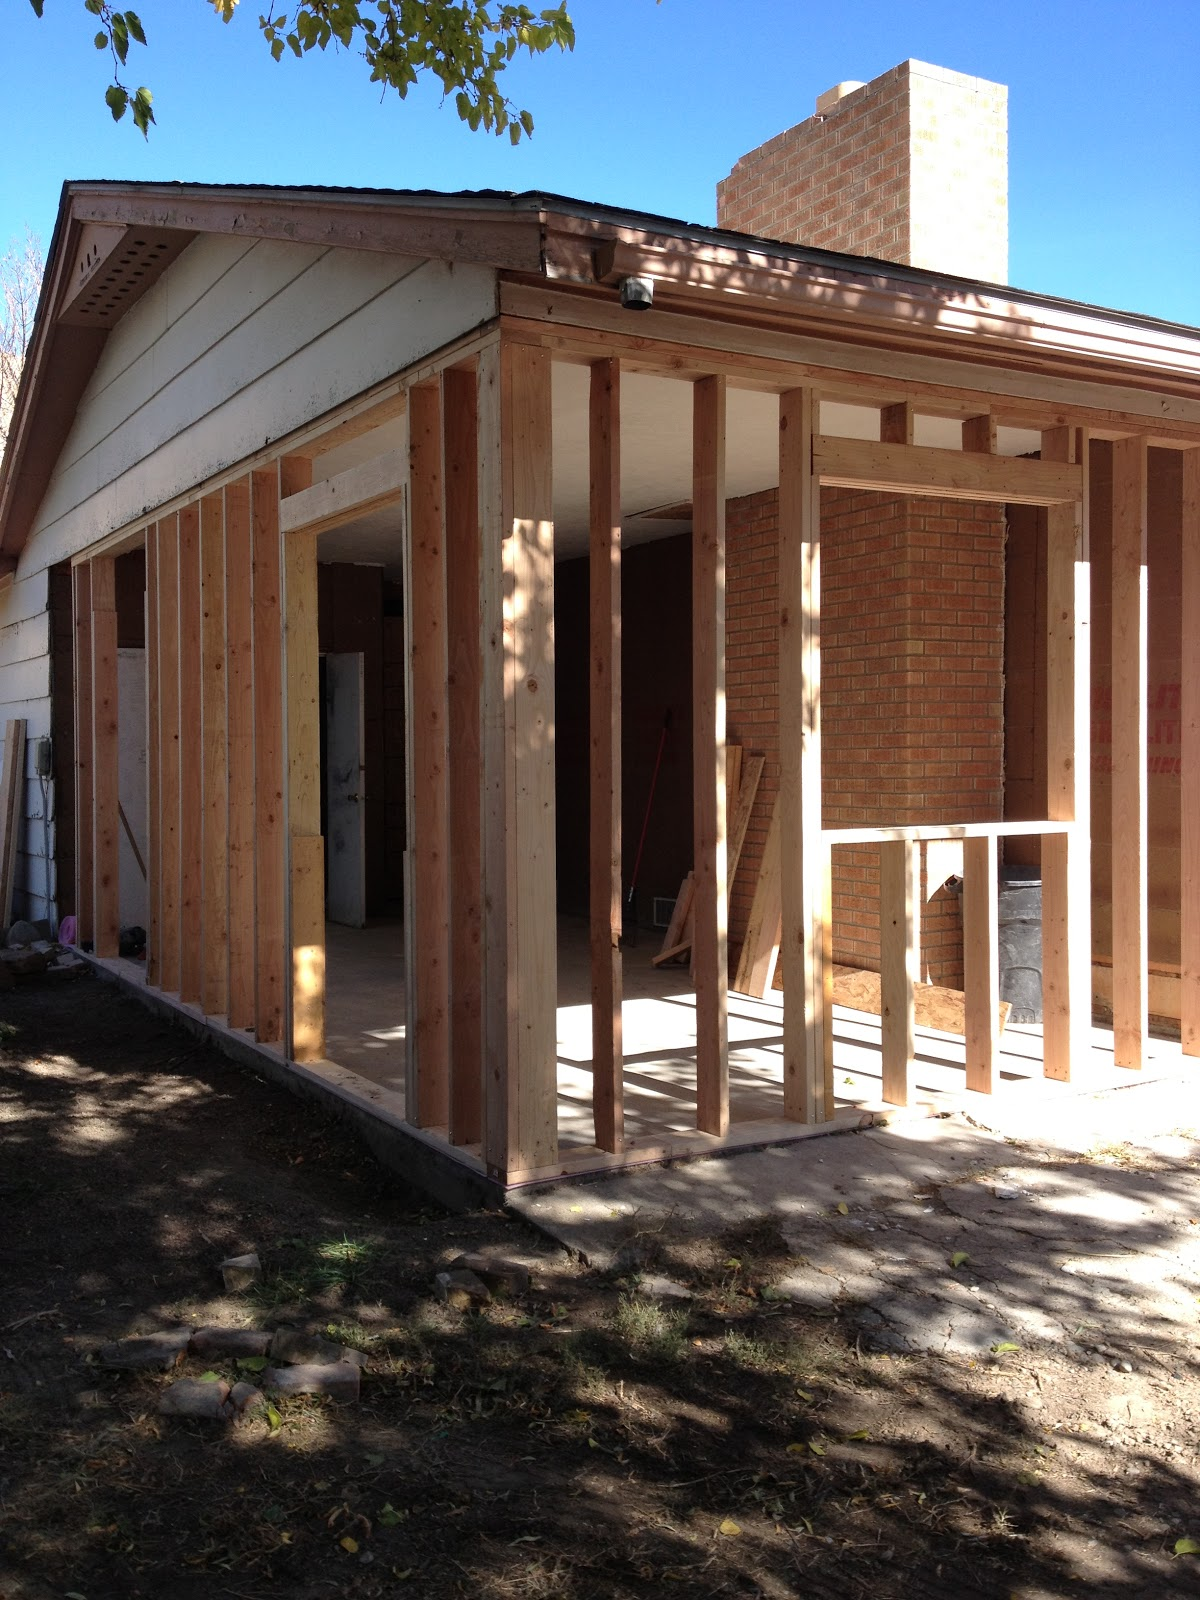 Enclose Carport Into Room : The handwork chronicles framing